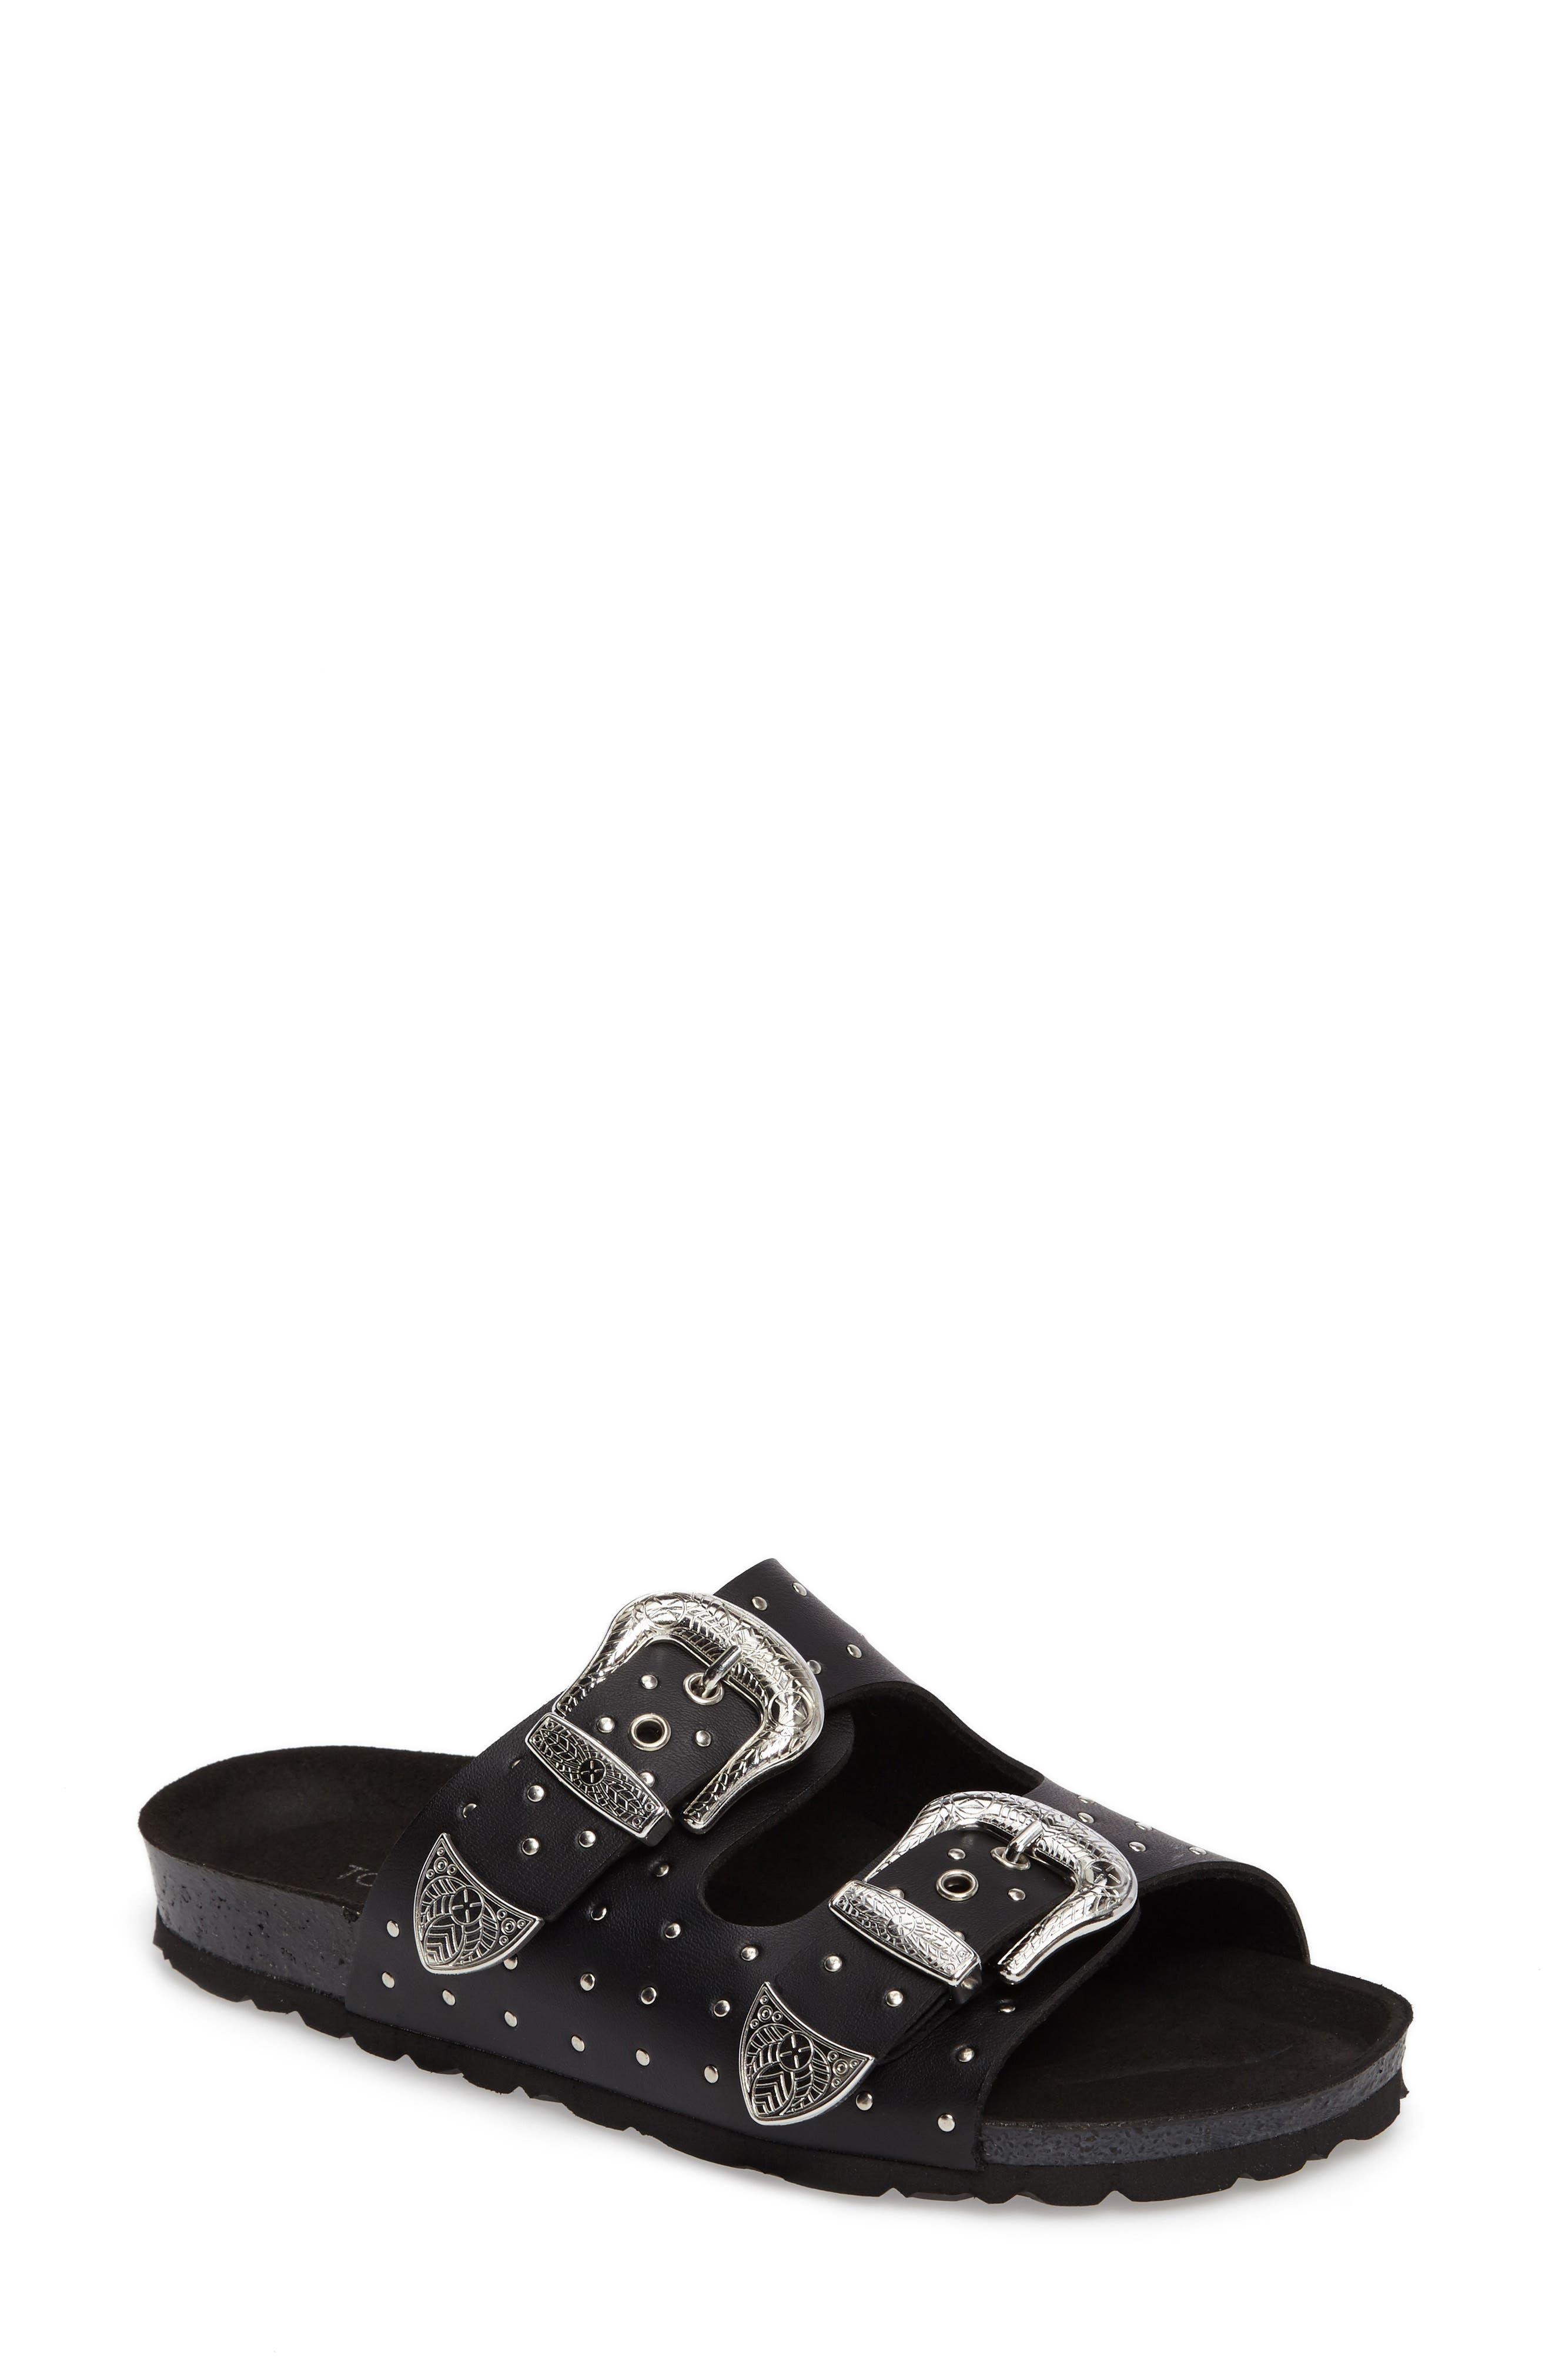 Alternate Image 1 Selected - Topshop Falcon Studded Concho Buckle Sandal (Women)